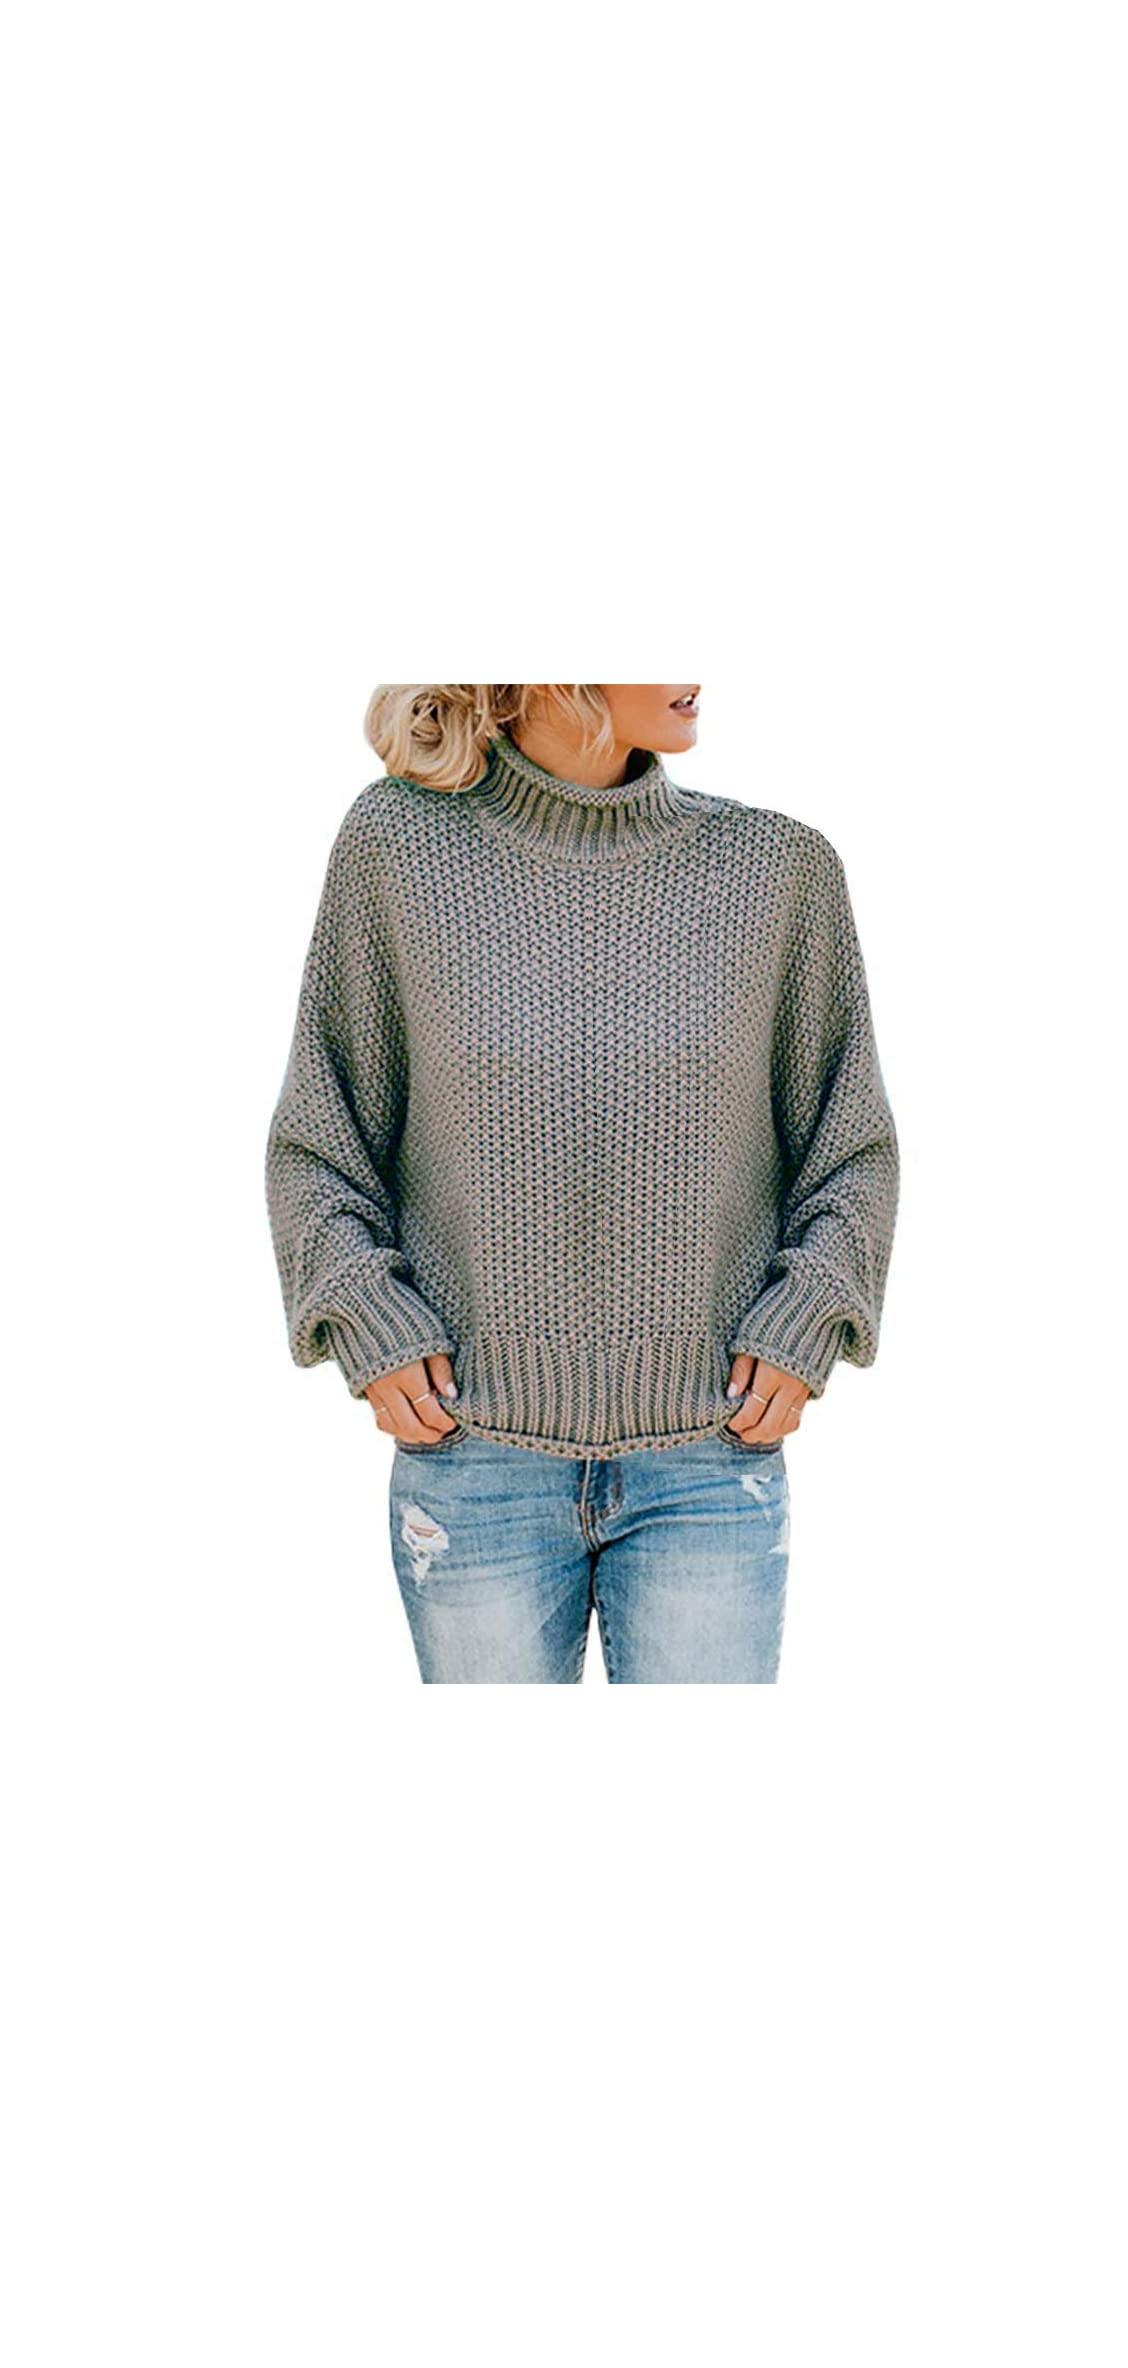 Womens Turtleneck Oversized Sweaters Batwing Long